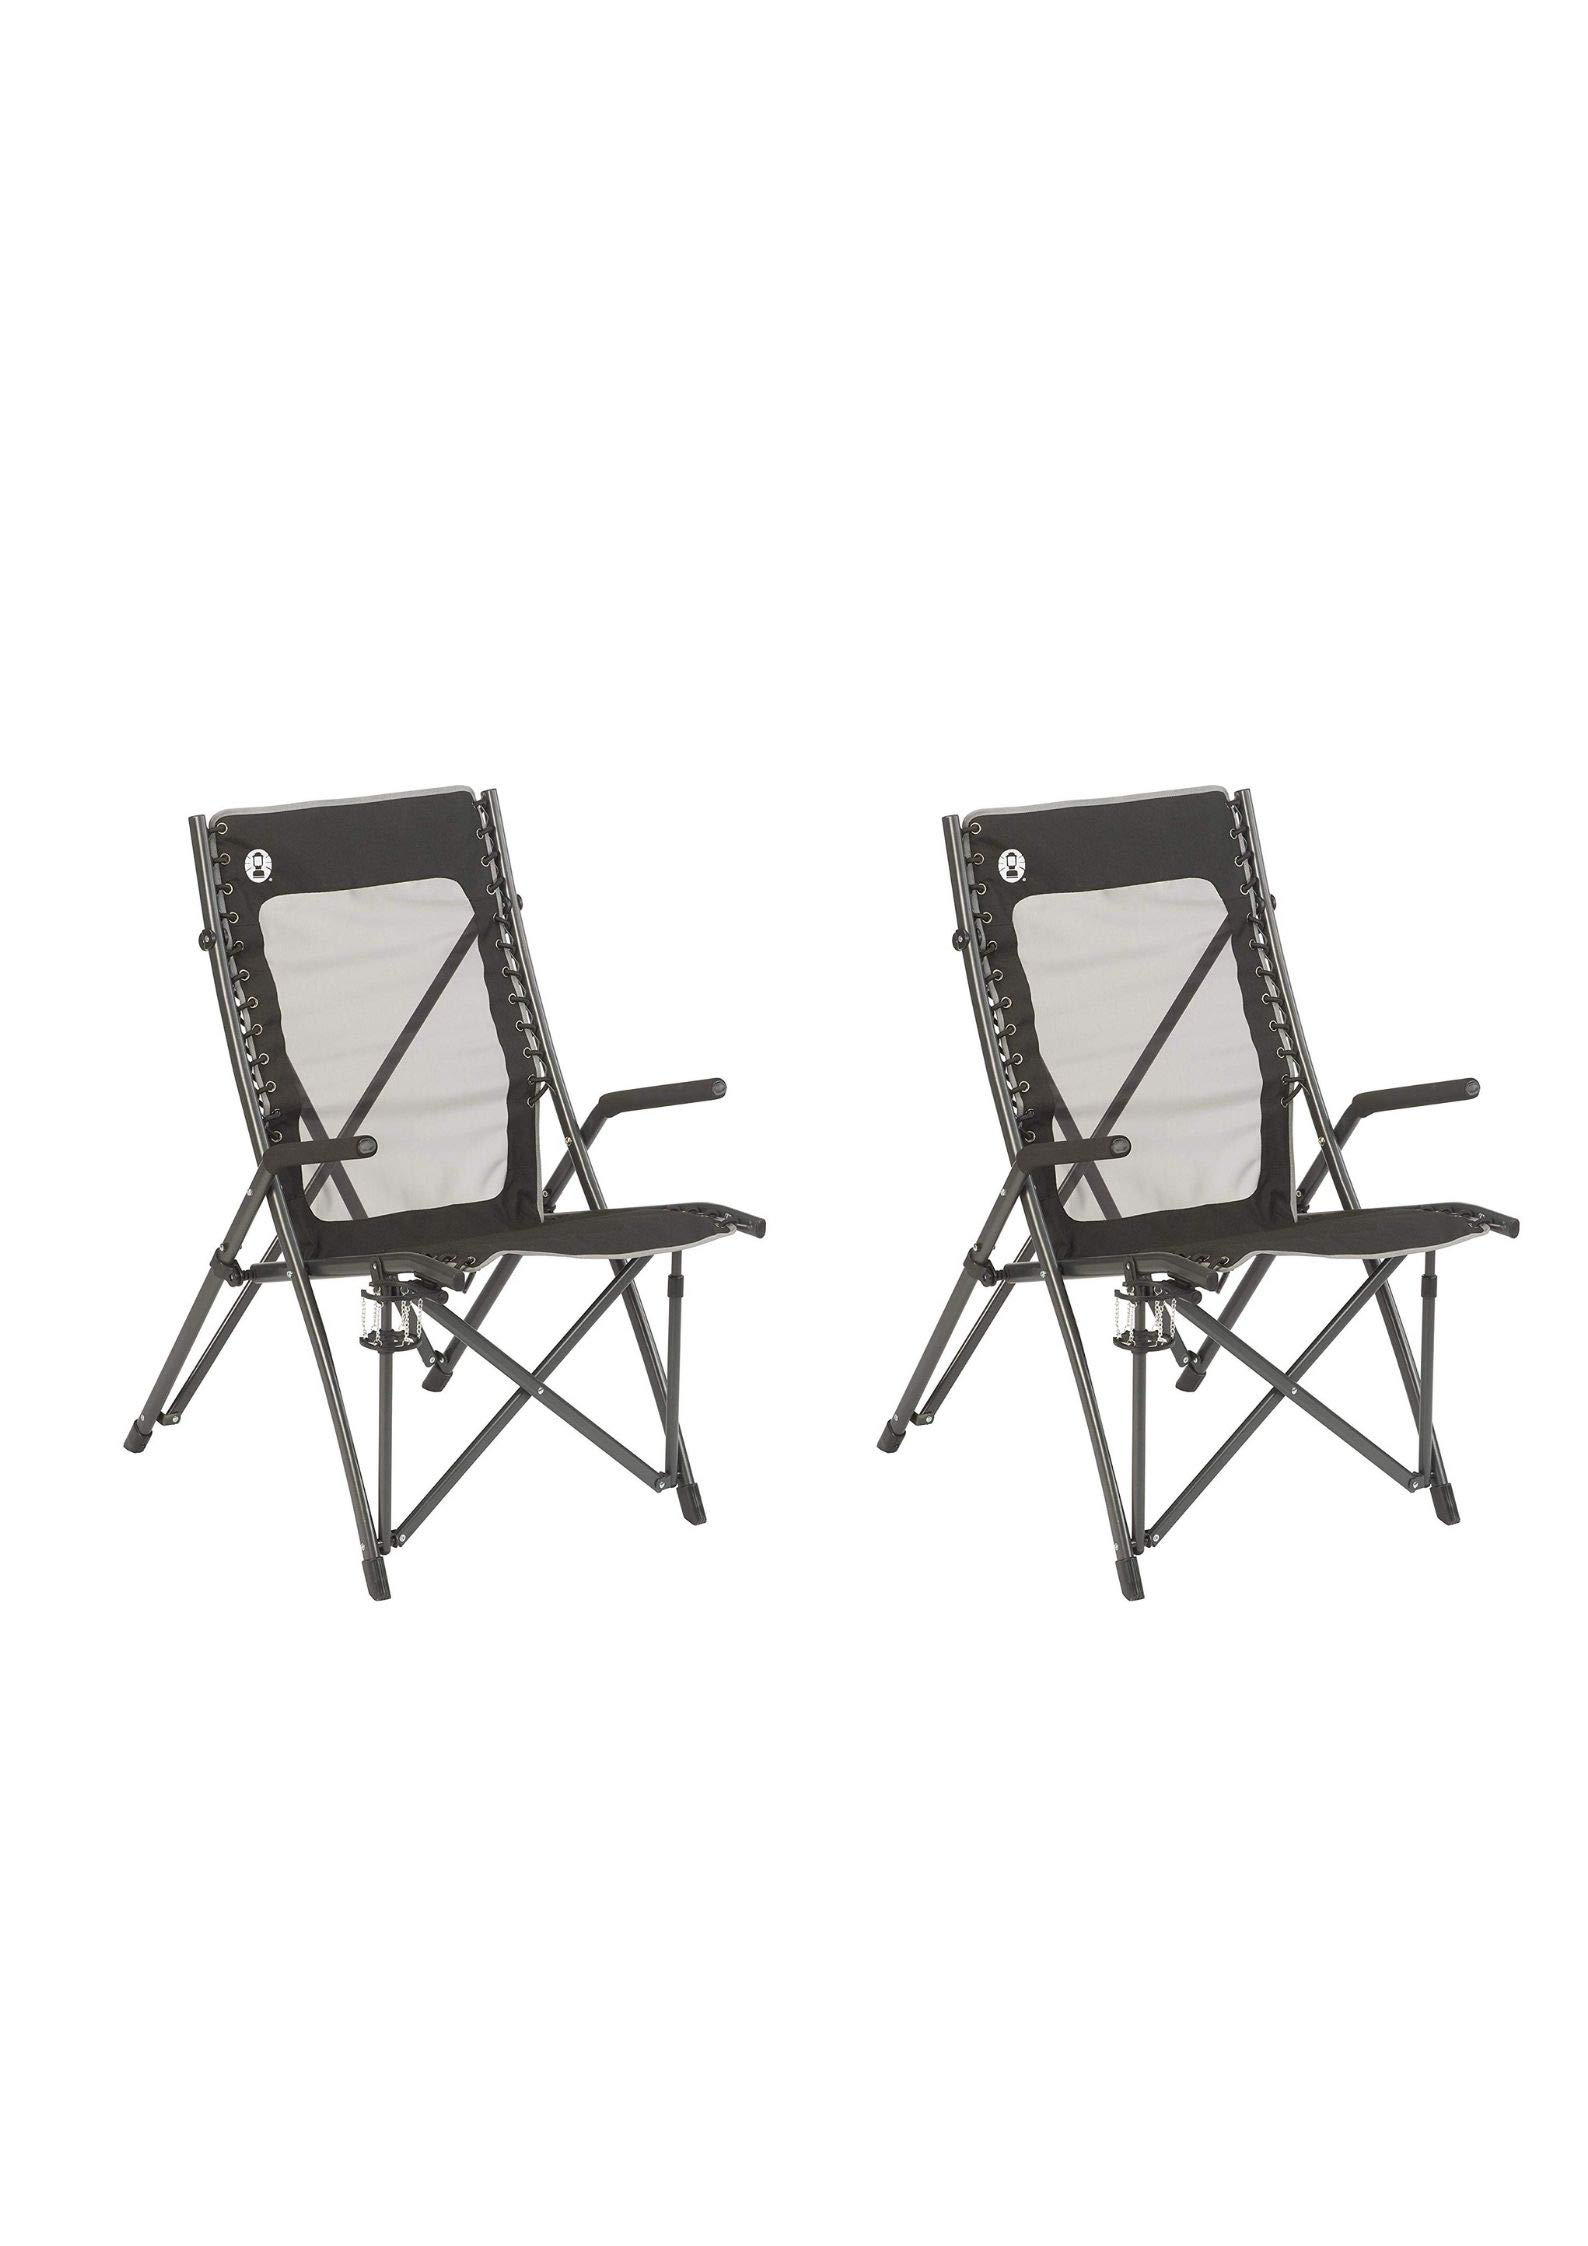 Coleman ComfortSmart Suspension Chair (2 Pack)